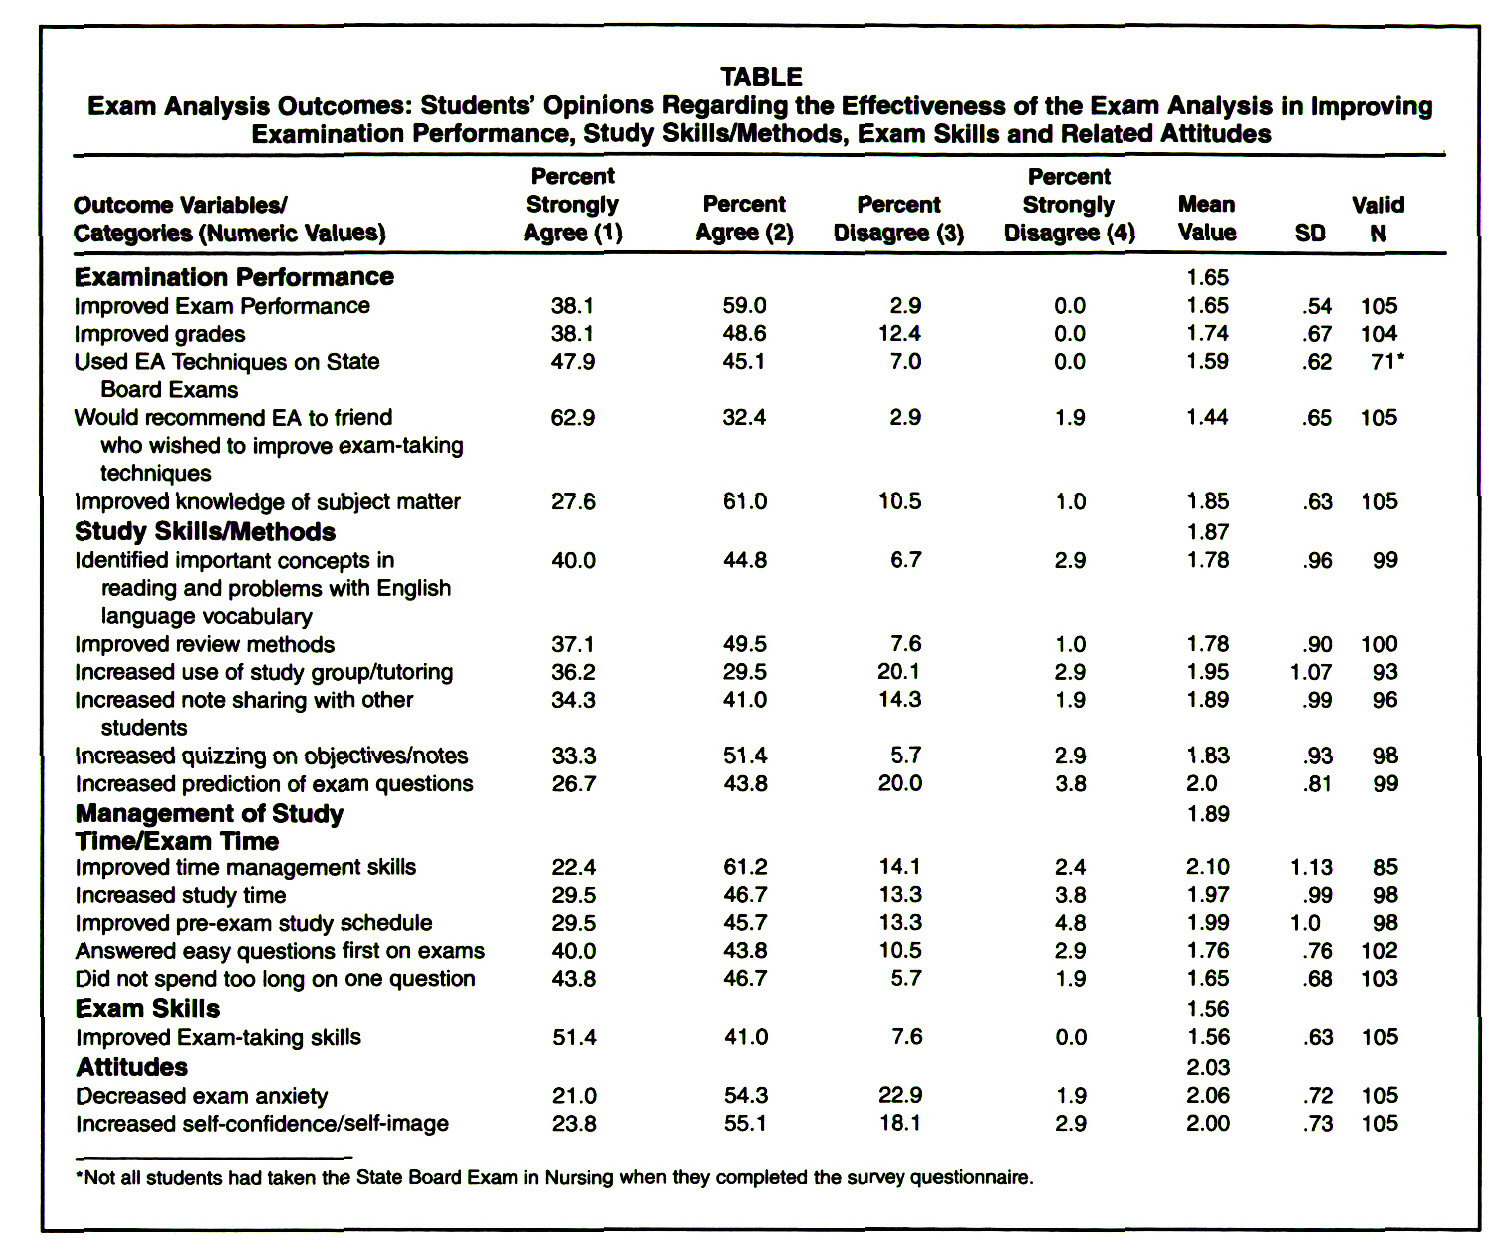 TABLEExam Analysis Outcomes: Students' Opinions Regarding the Effectiveness of the Exam Analysis in Improving Examination Performance, Study Skills/Methods, Exam Skills and Related Attitudes